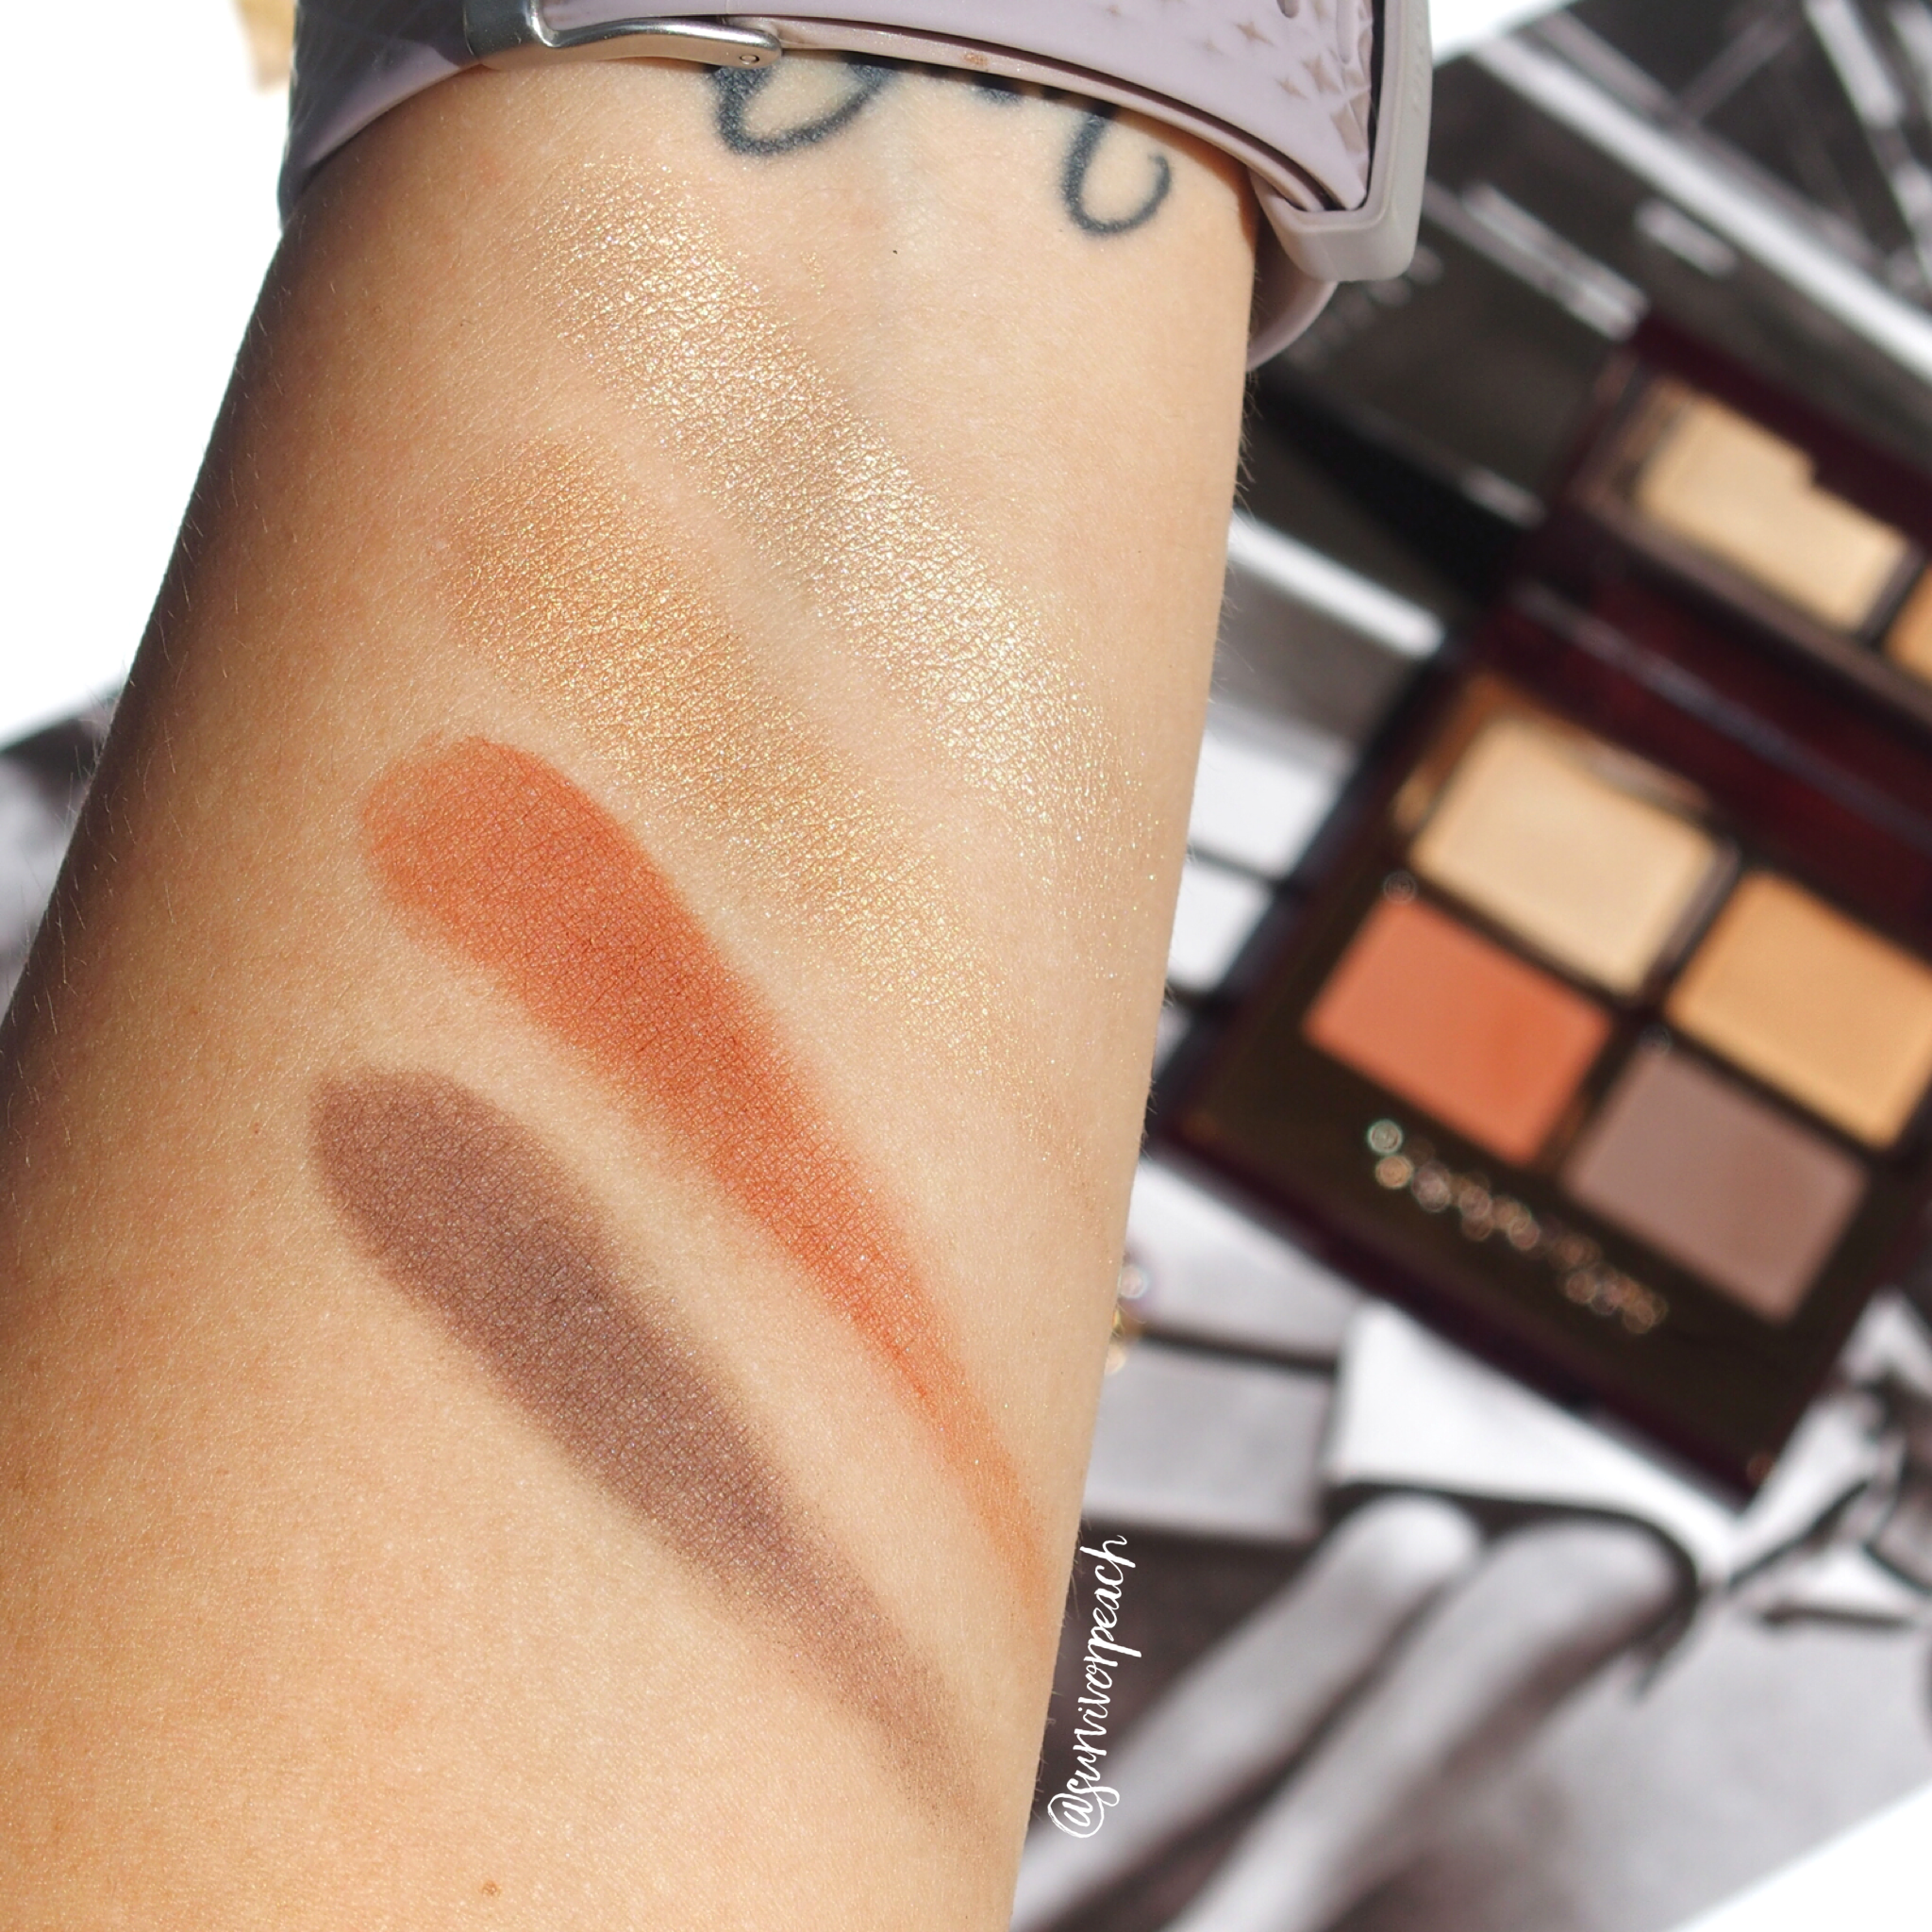 Charlotte Tilbury Transform Eyes palette swatches